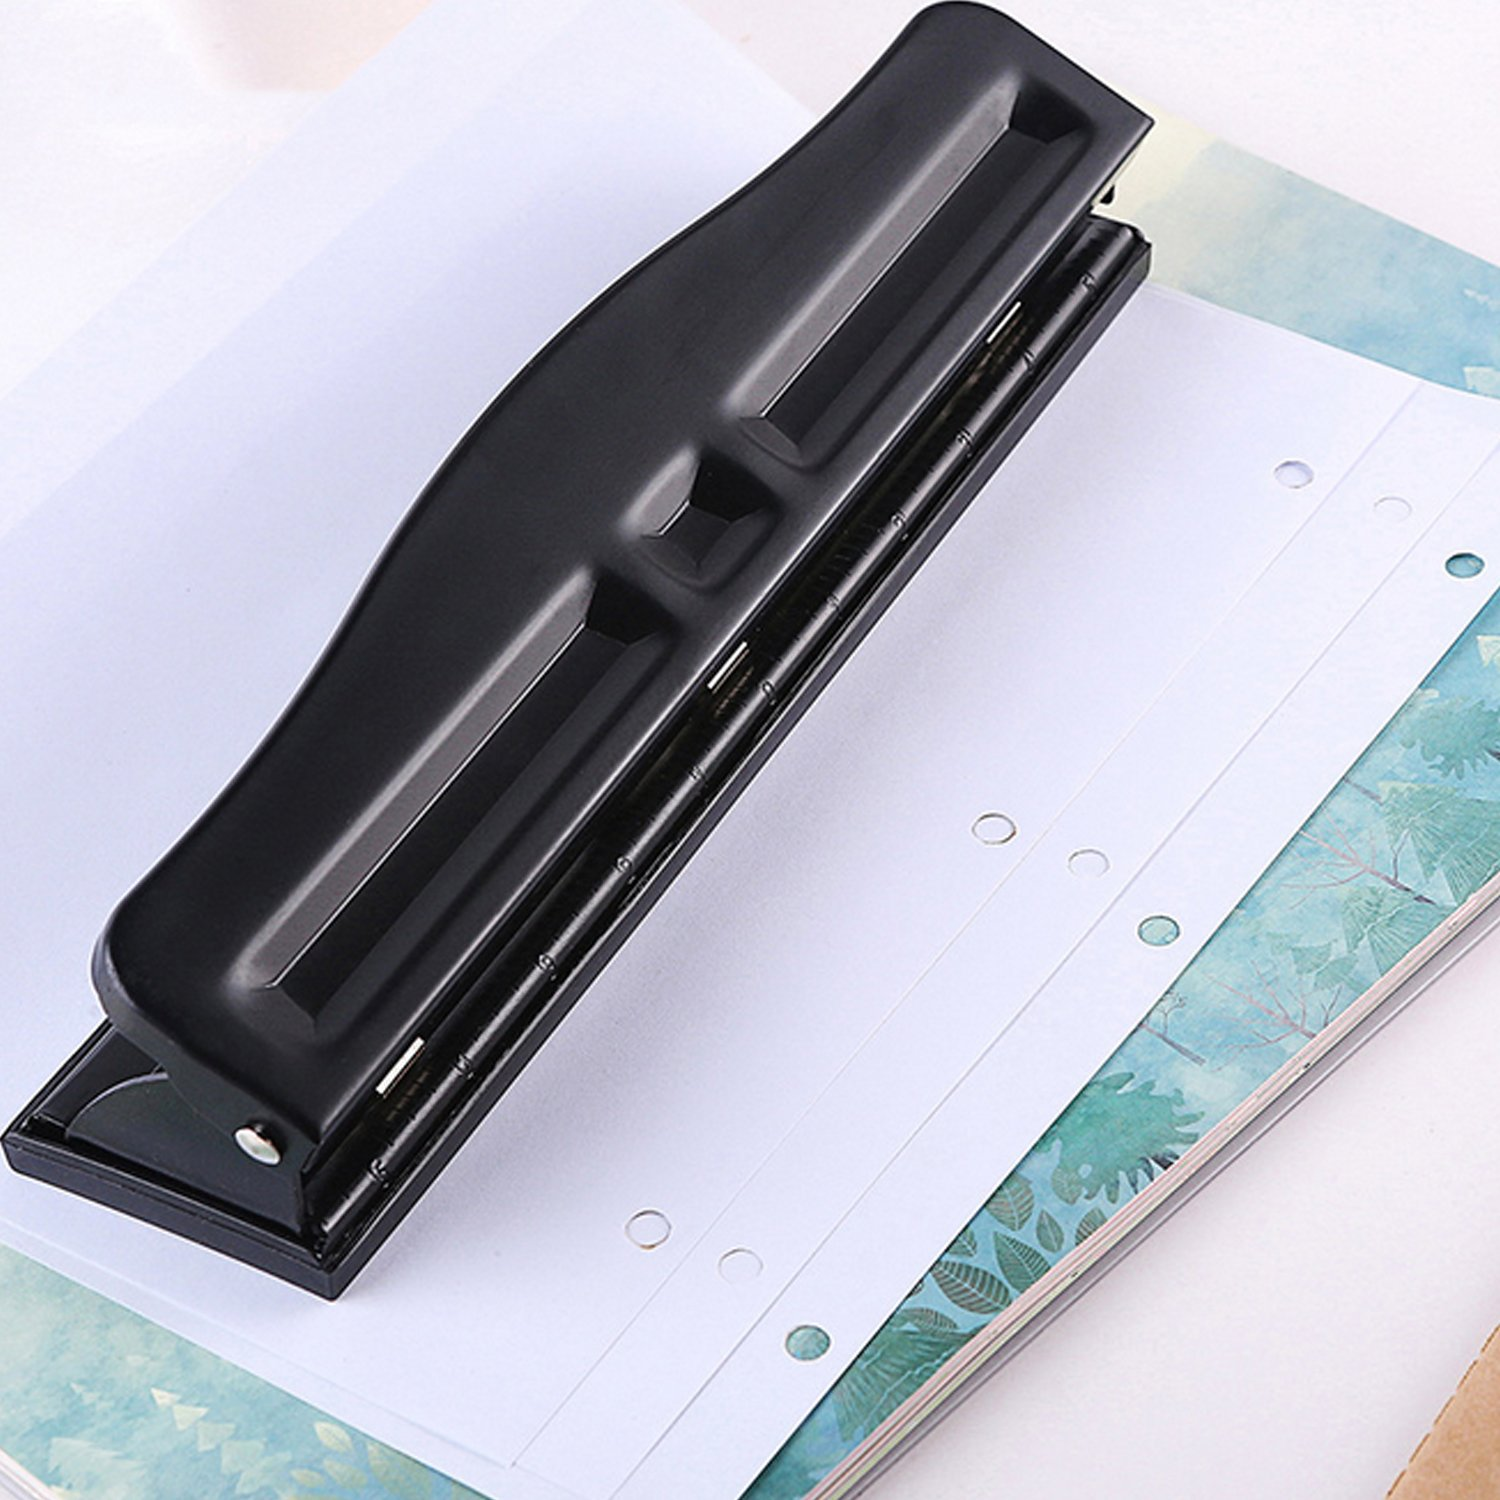 Adjustable 3 Hole Punch, SmartTouch, Low Force, 1/4-Inch, Size, 8-10 Sheet Capacity Punch Capacity, Black